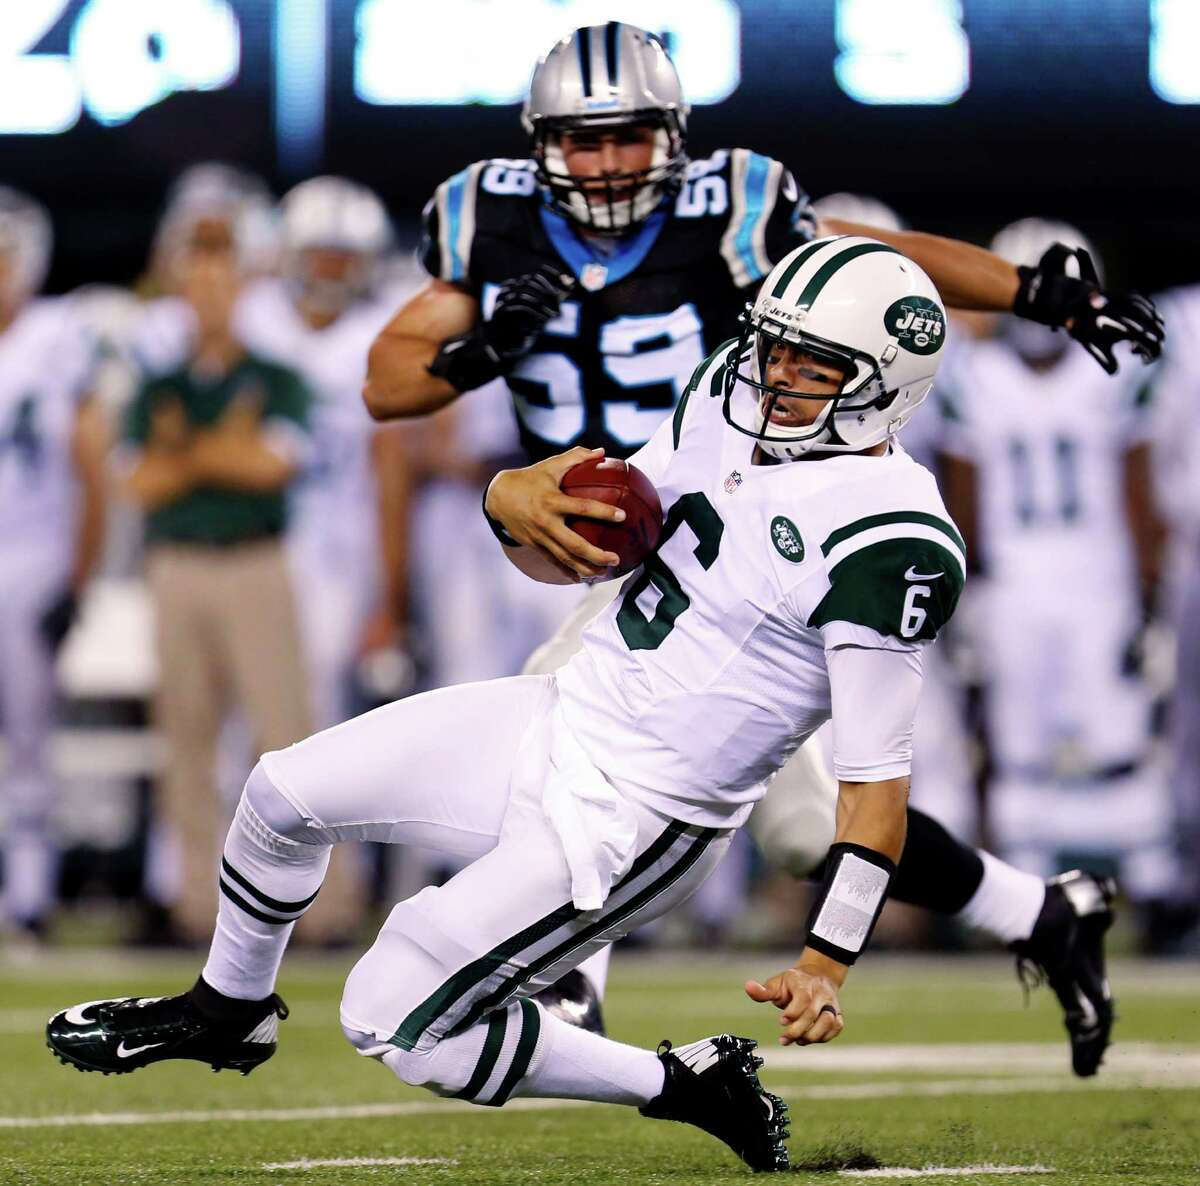 New York Jets quarterback Mark Sanchez (6) slides to avoid contact as Carolina Panthers linebacker Luke Kuechly (59) trails the play during the first half of a preseason NFL football game, Sunday, Aug. 26, 2012, in East Rutherford, N.J. (AP Photo/Julio Cortez)